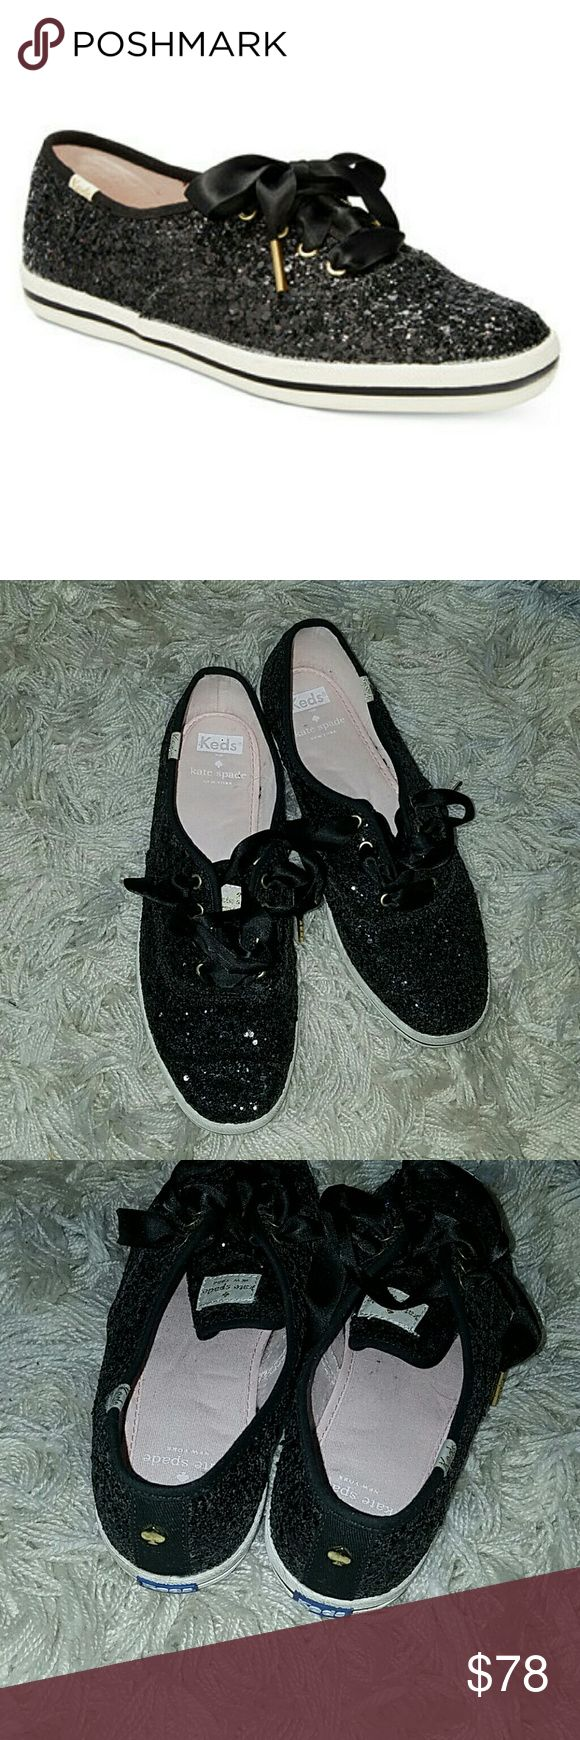 Kate Spade Glitter Black Keds Sold Out Size!! Gorgeous shoes in excellent used condition.  AB kate spade Shoes Sneakers